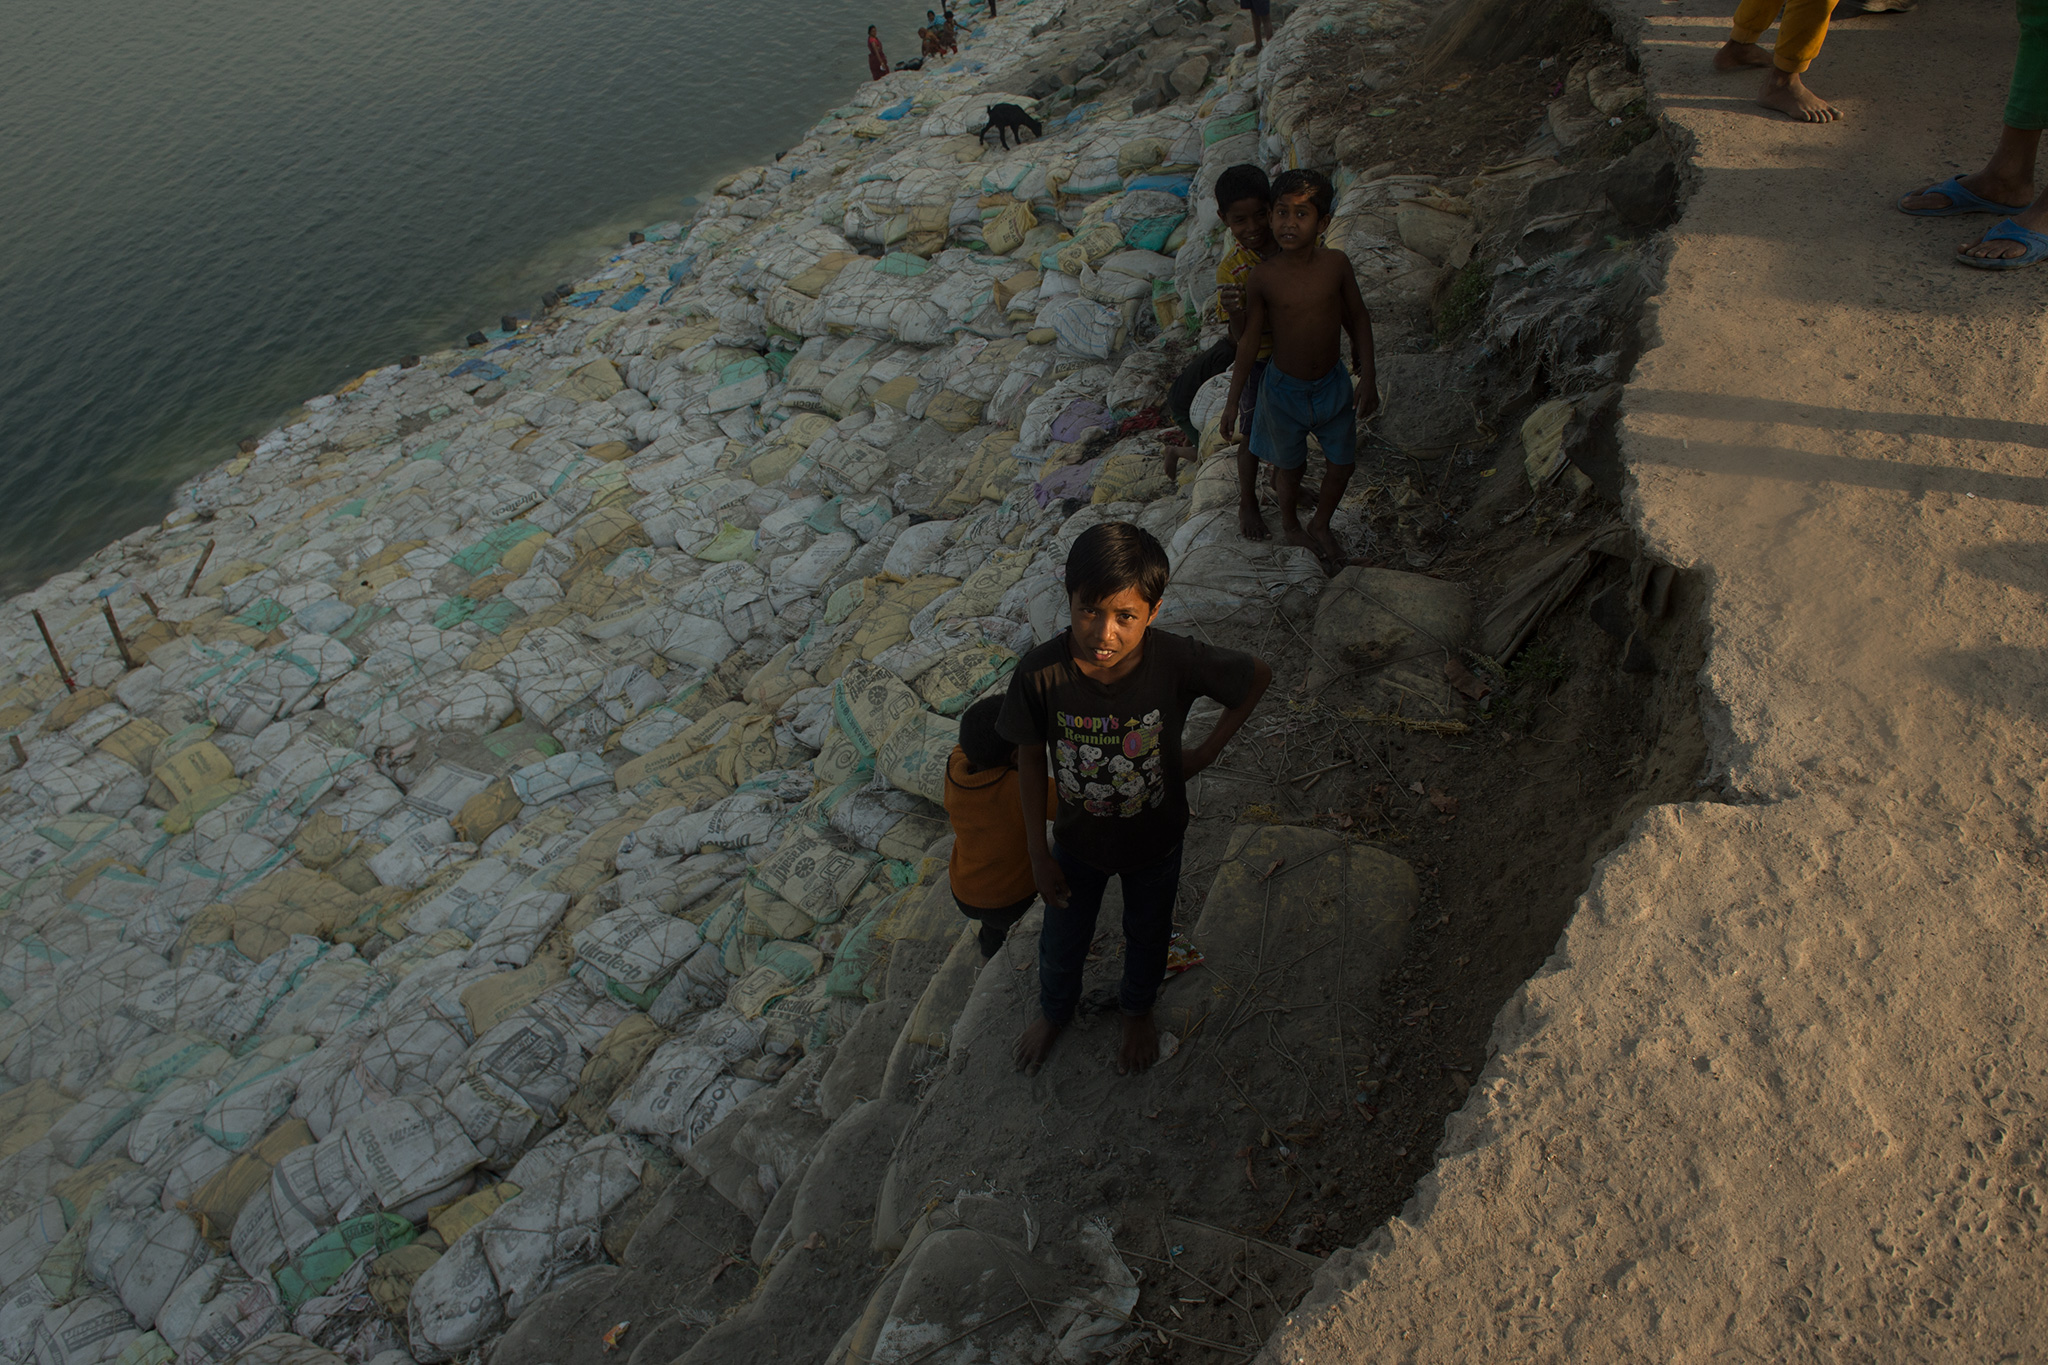 A half-eaten road runs along what has now become a cliff along the Ganga